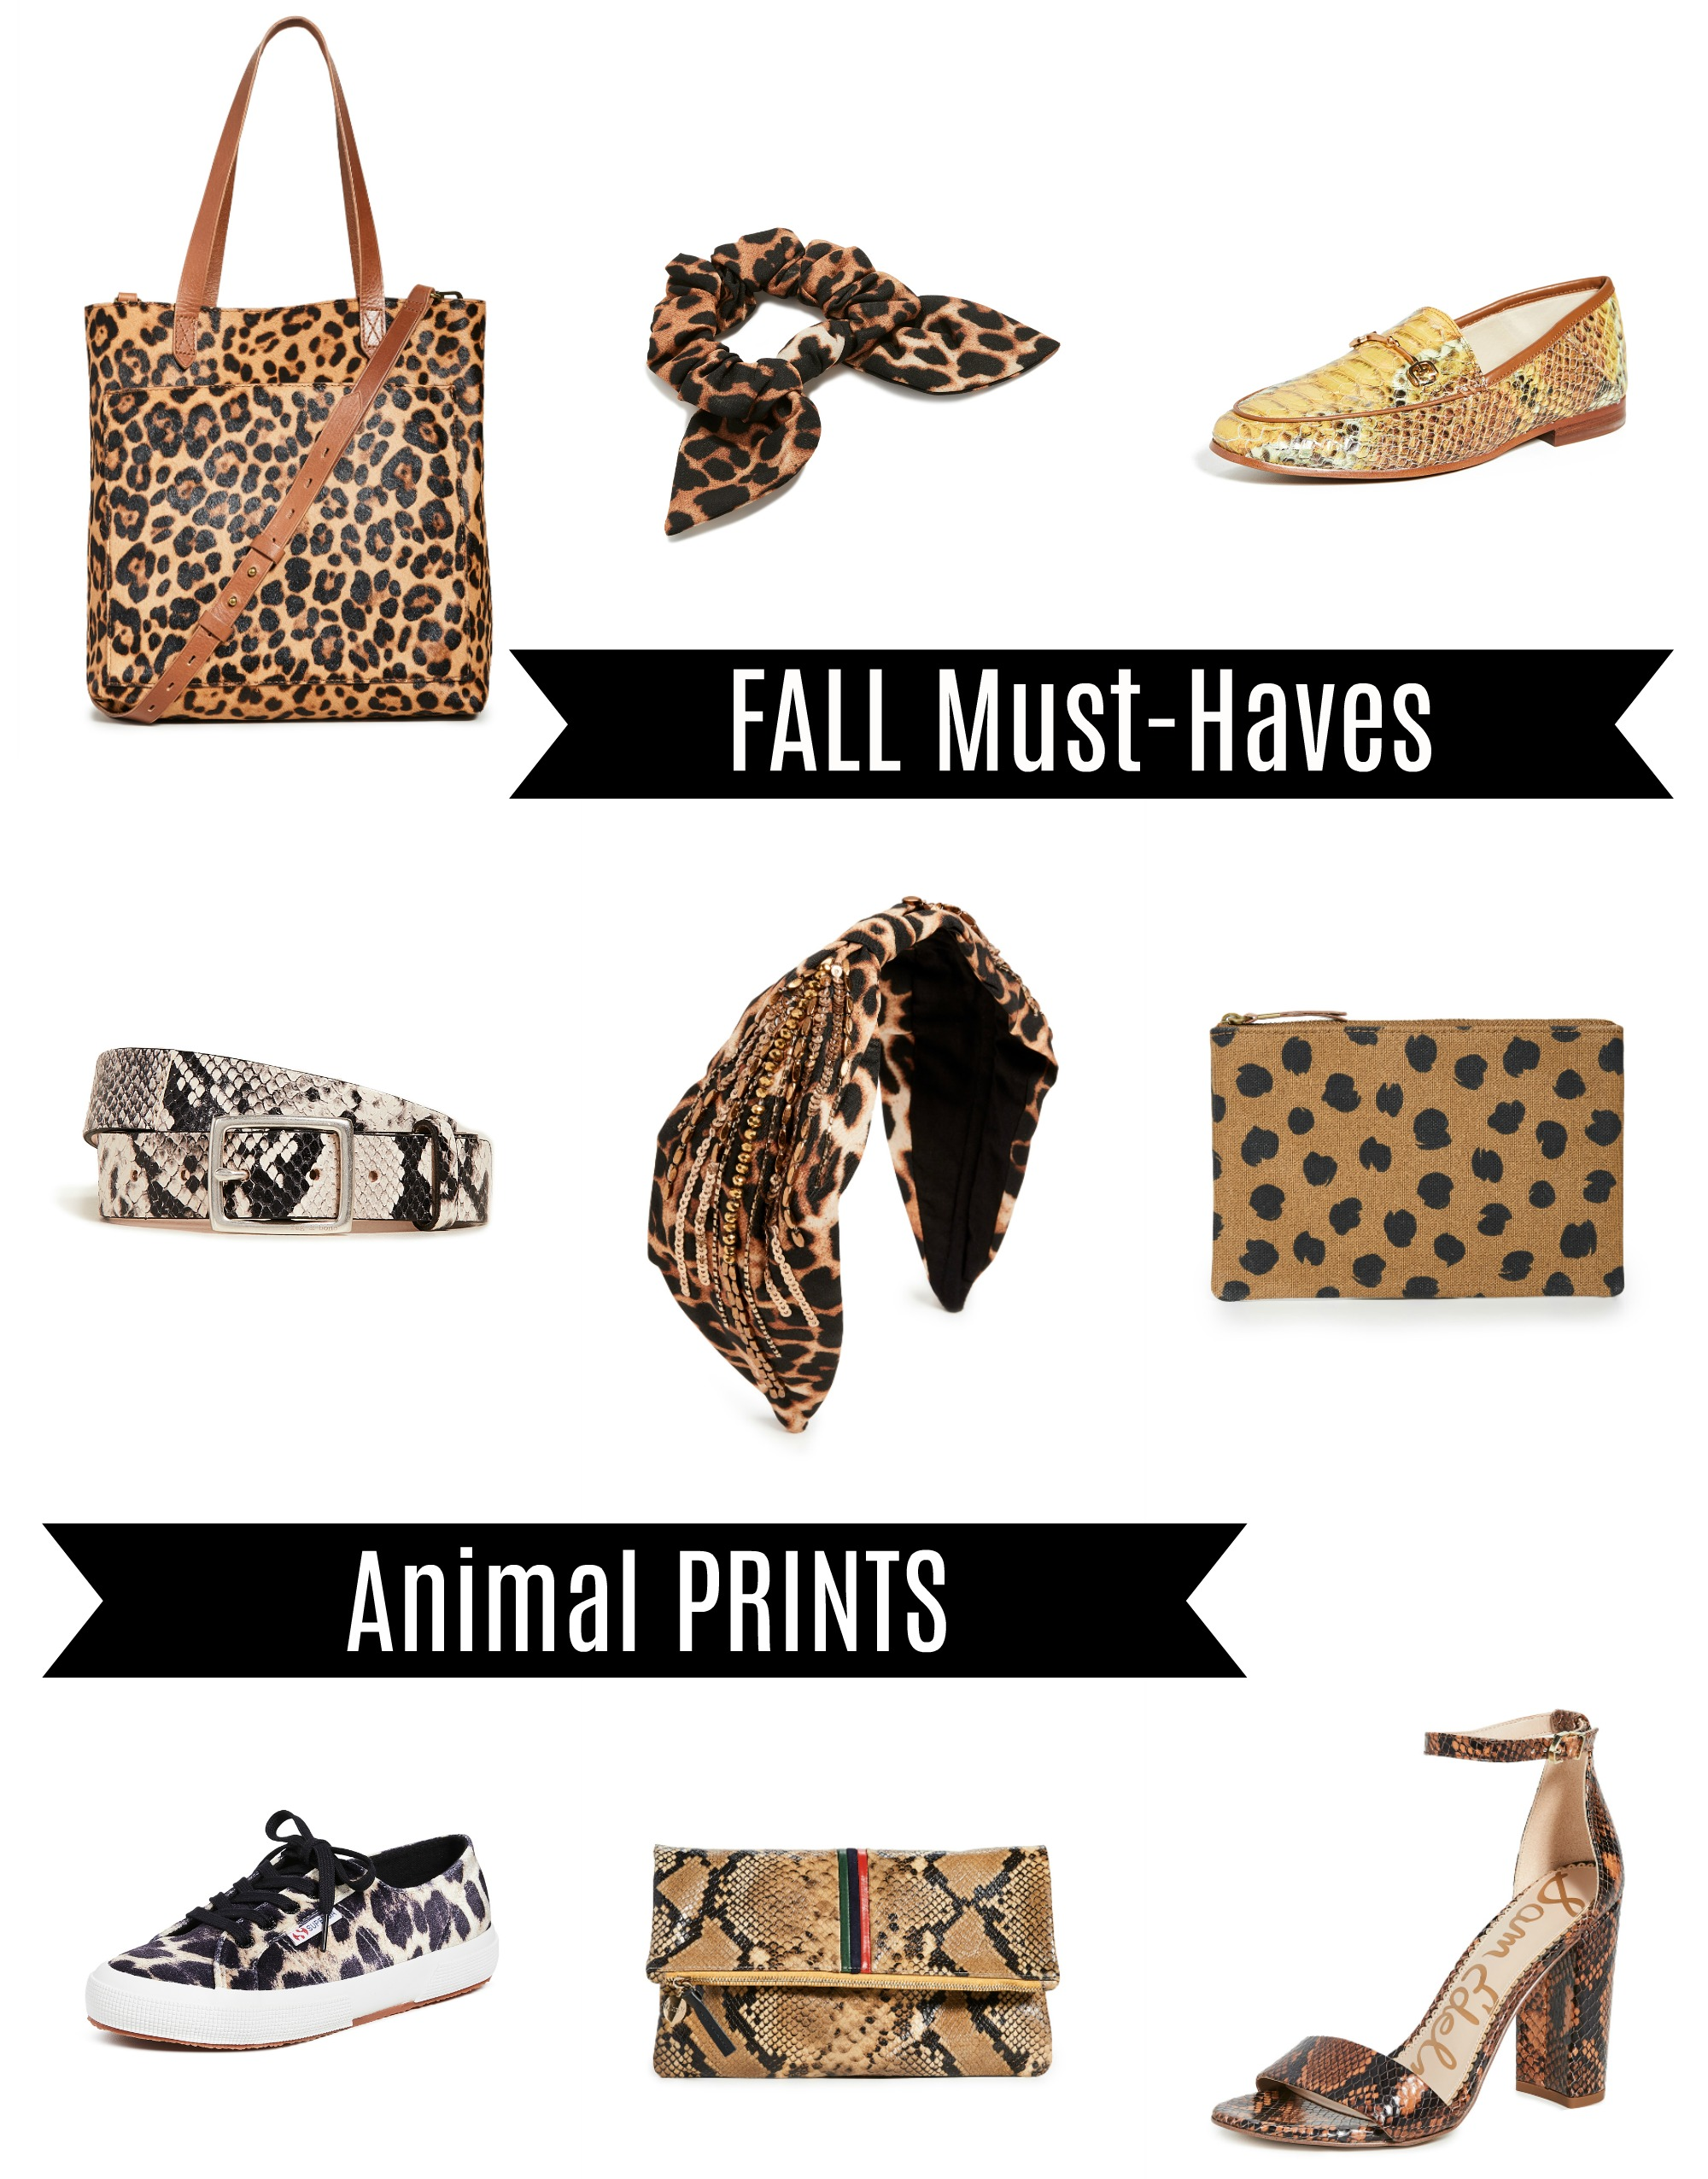 collage of animal print shoes, bags and accessories for fall